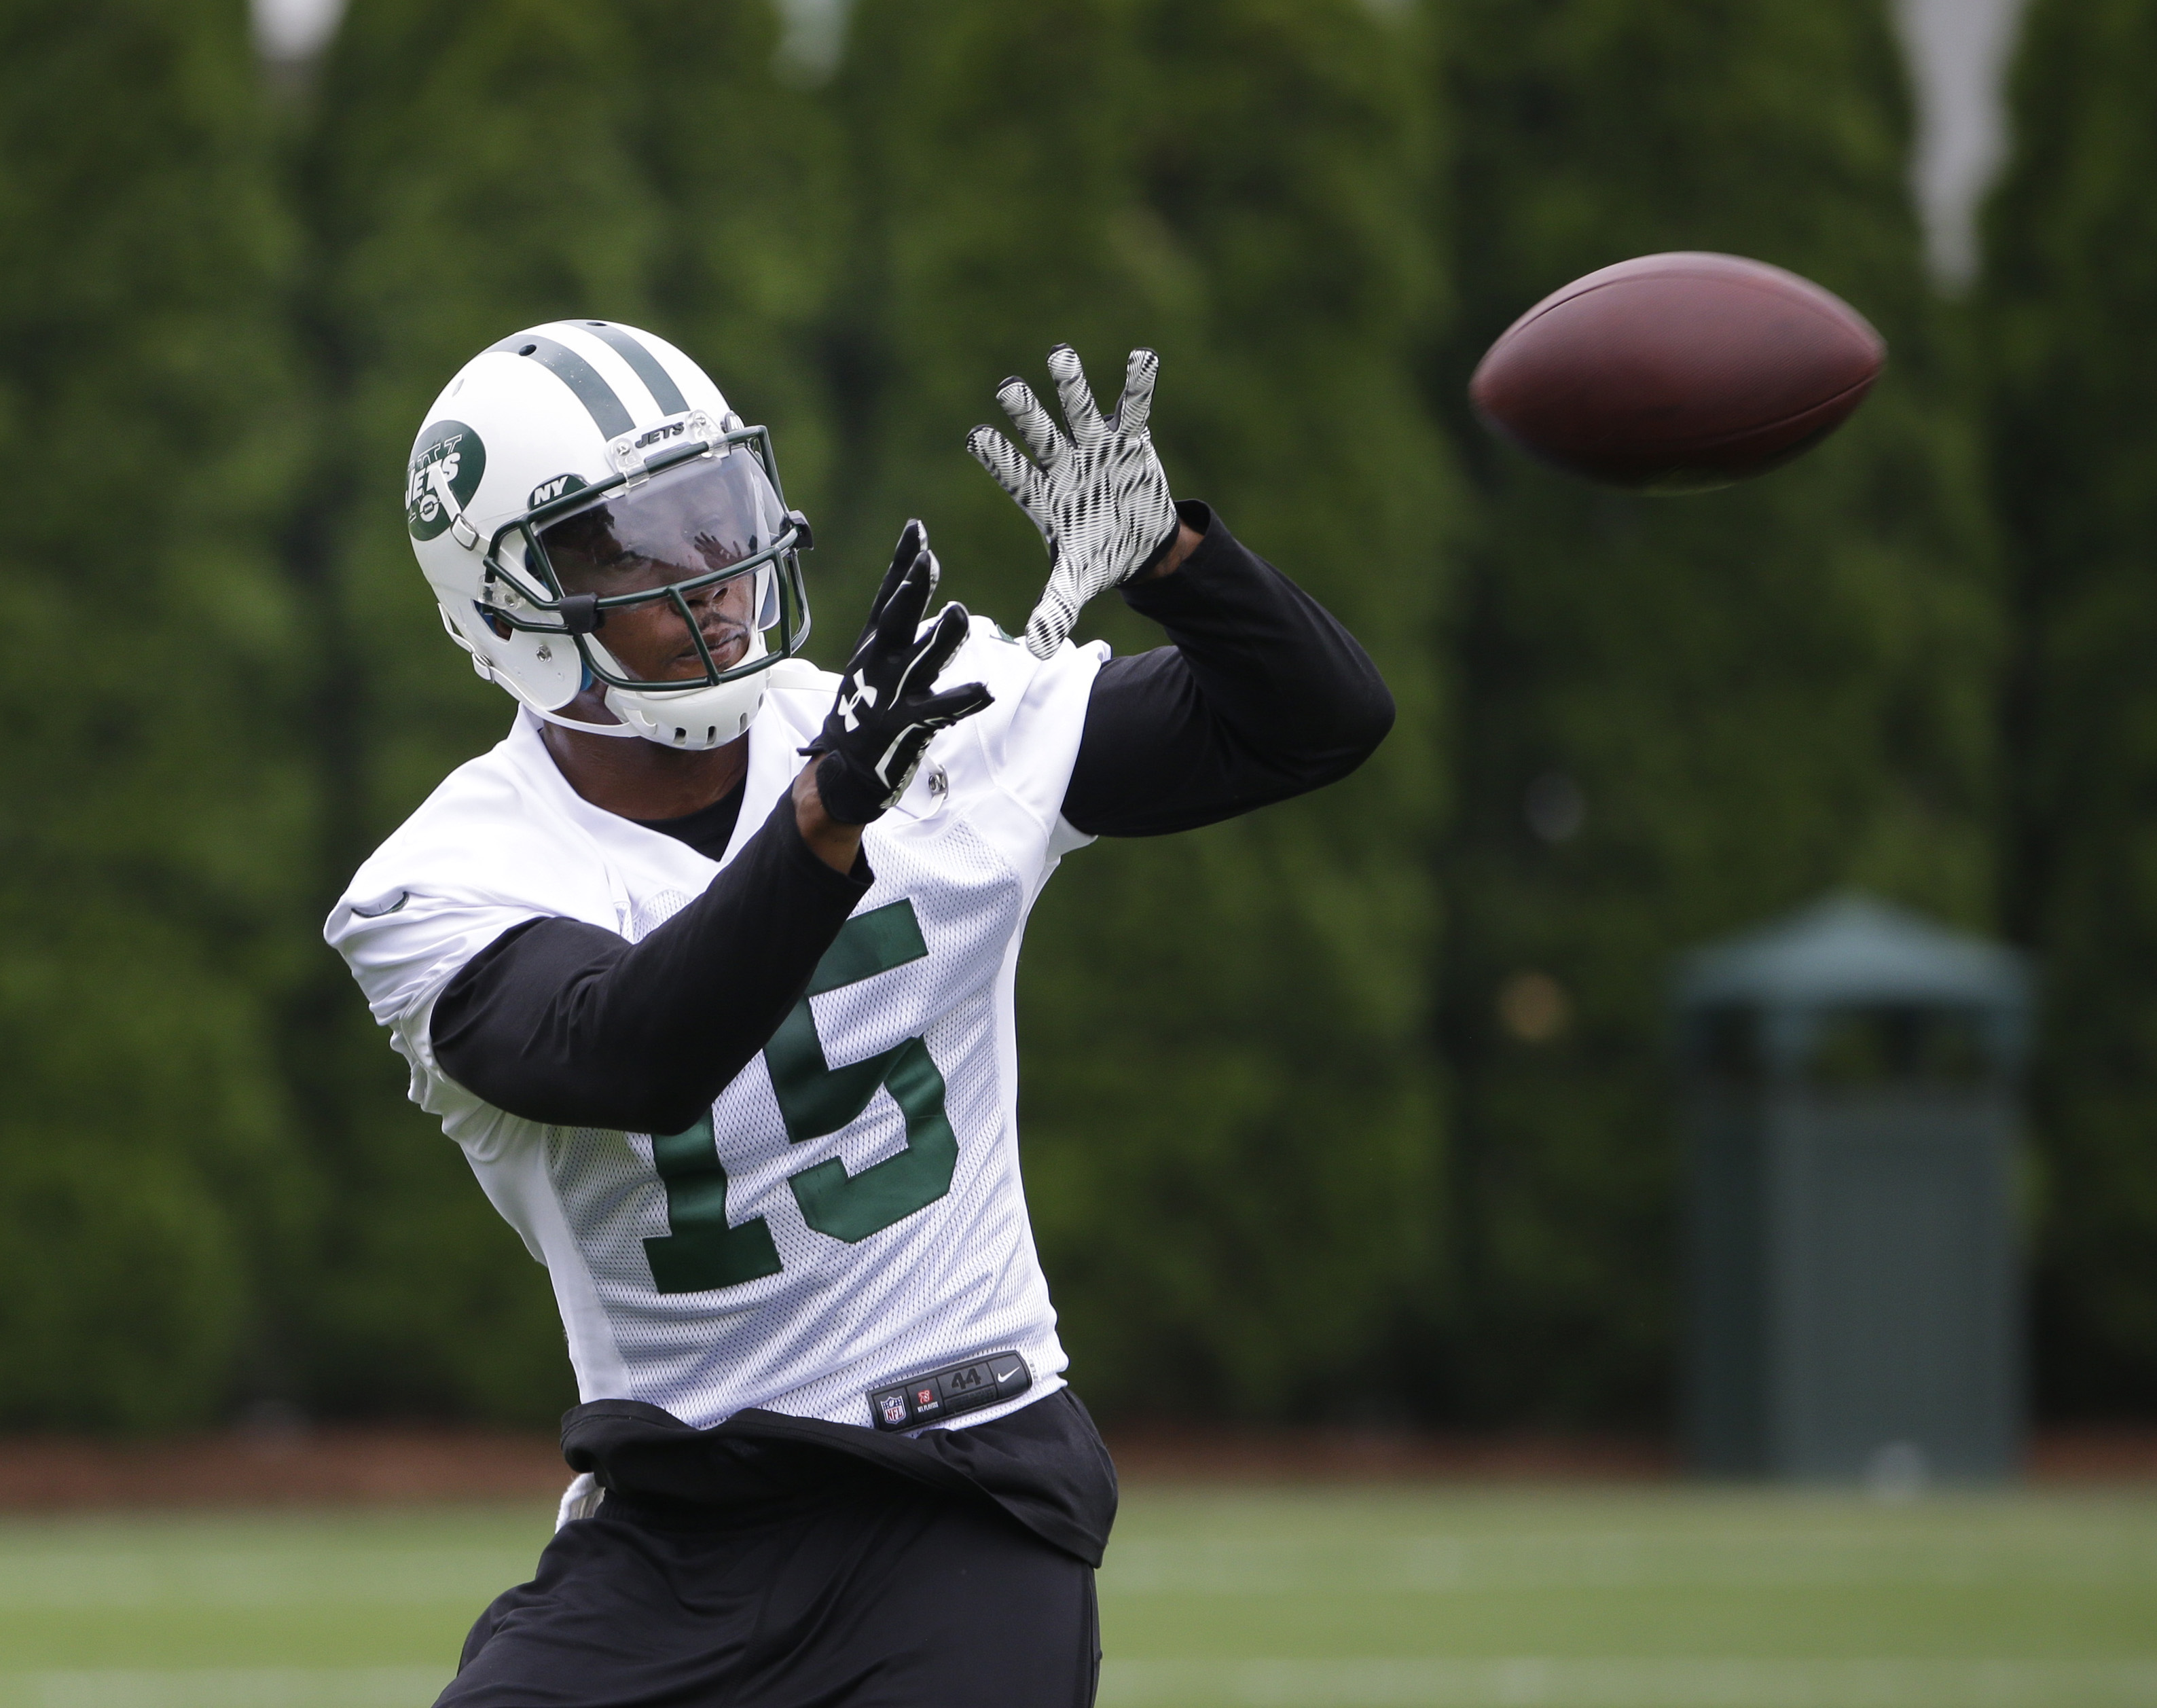 New York Jets' Brandon Marshall catches a pass during an NFL football organized team activity in Florham Park, N.J., Wednesday, May 27, 2015. (AP Photo/Seth Wenig)